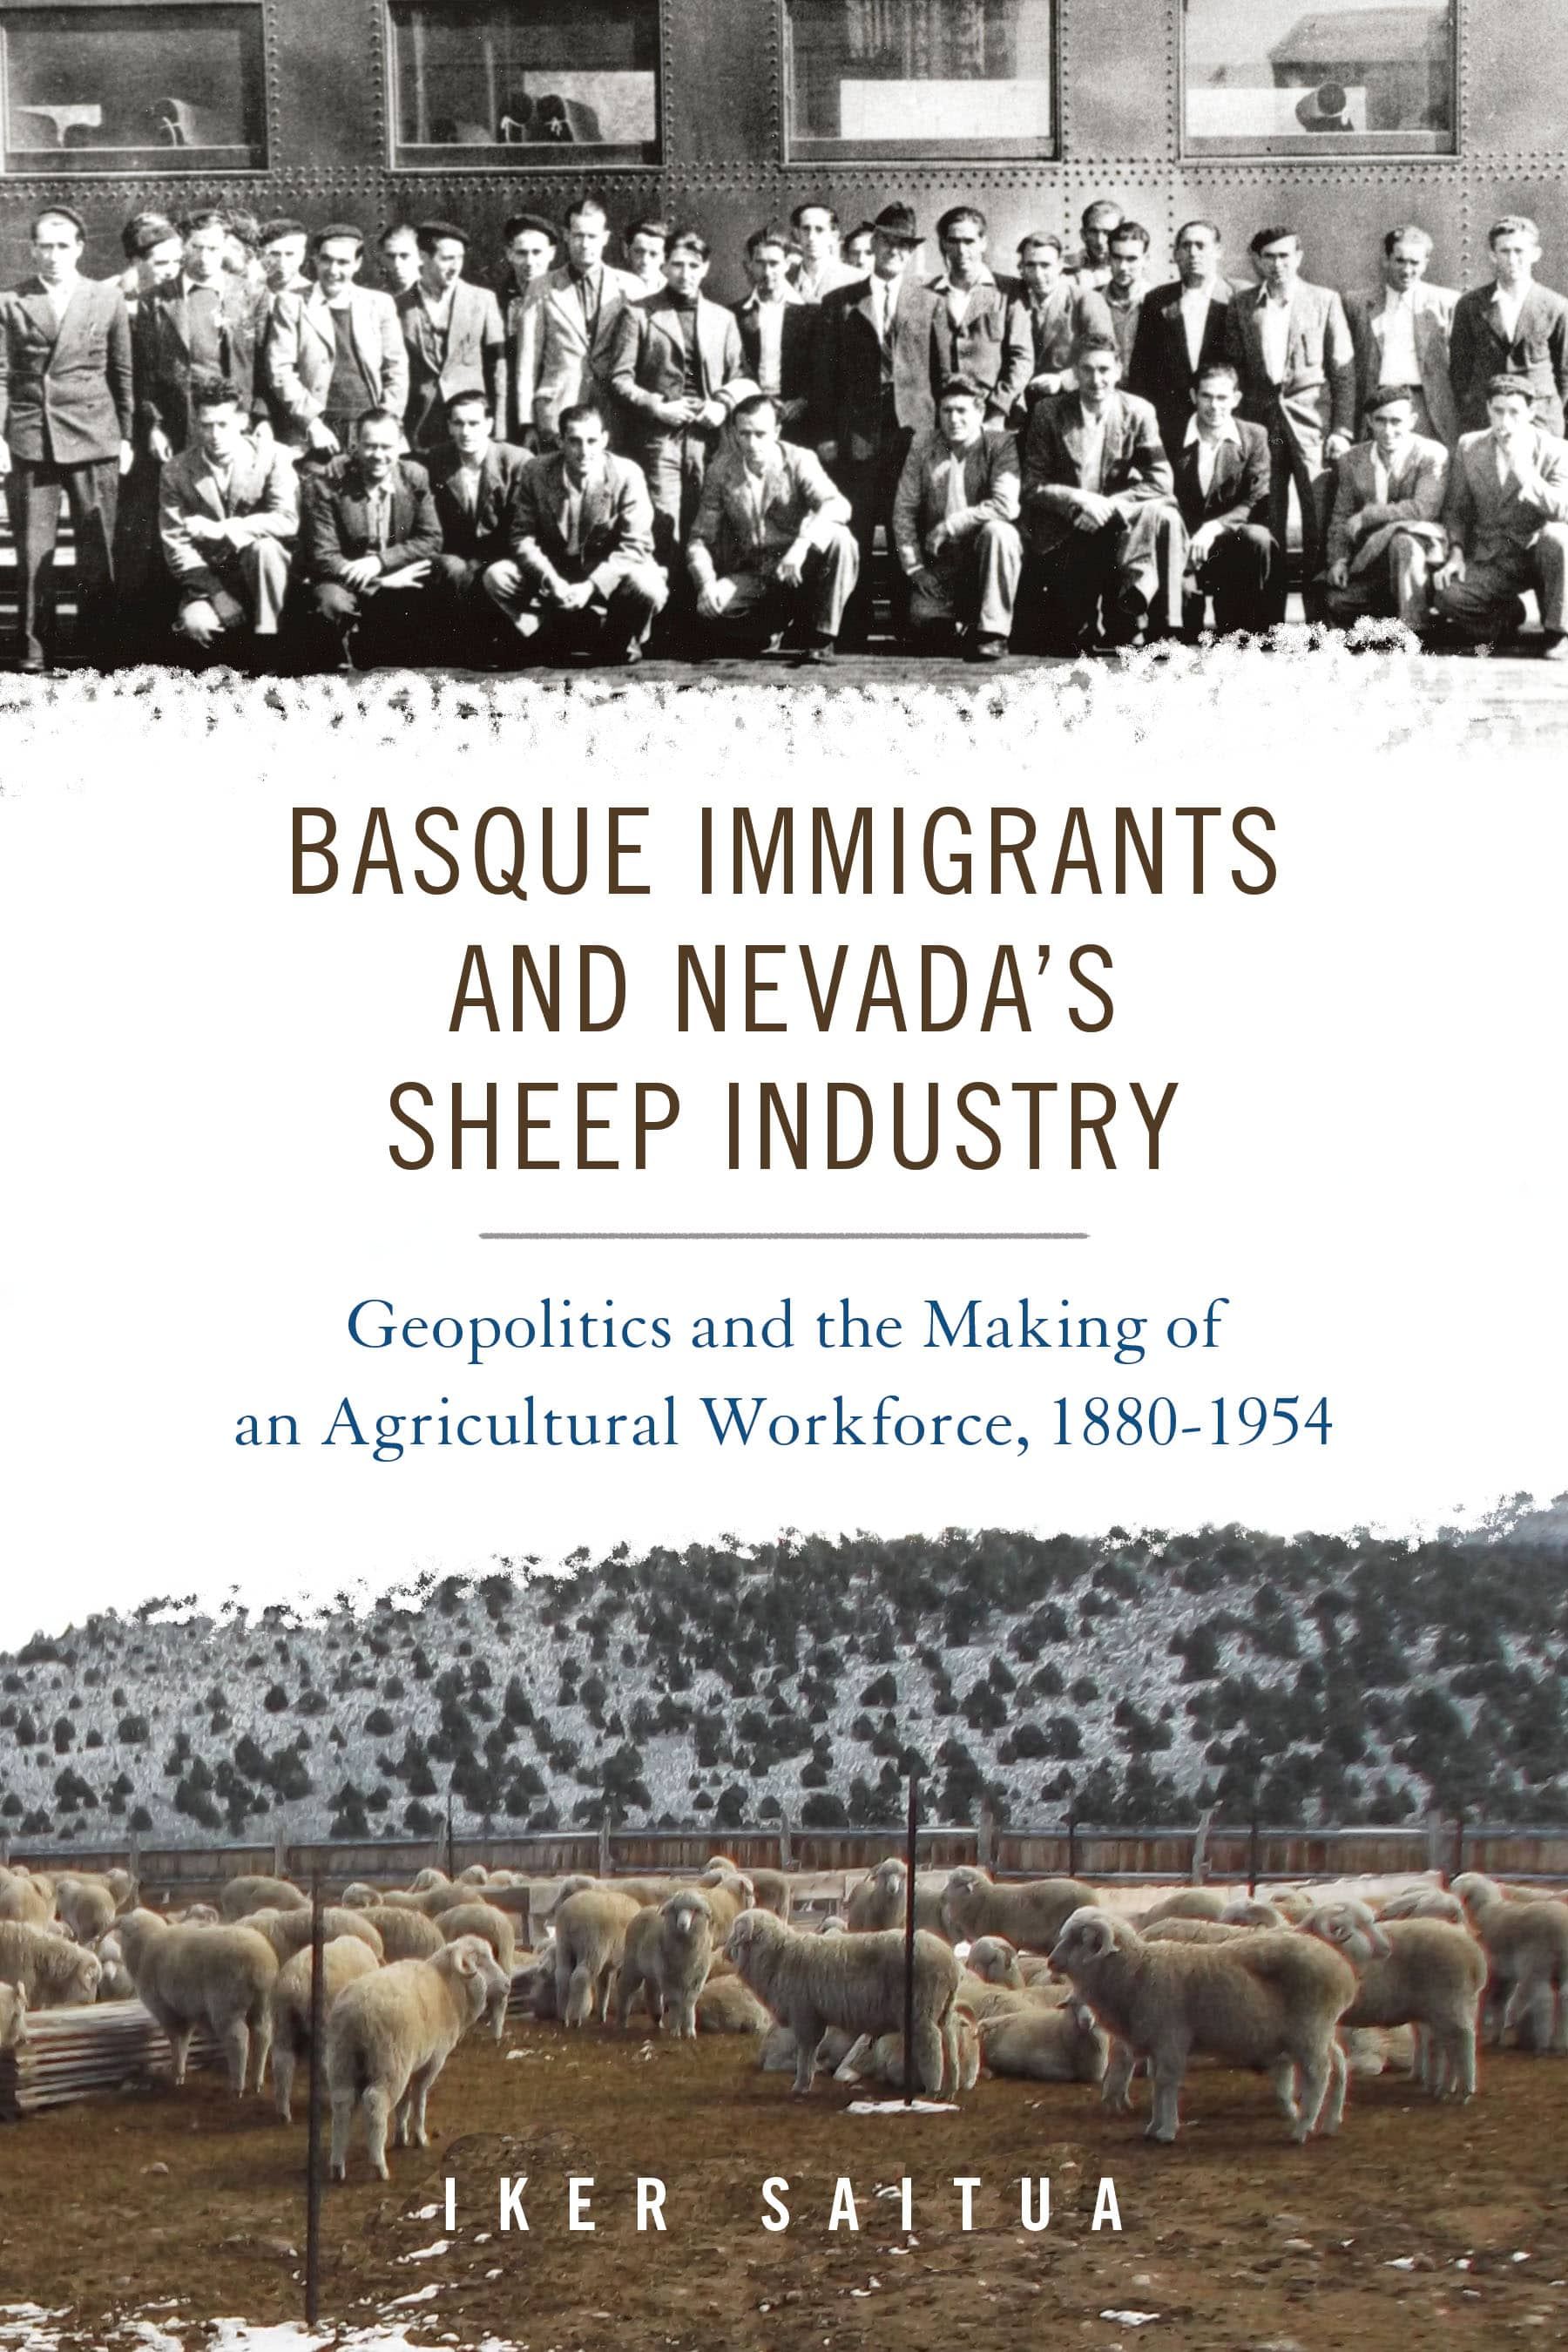 Basque Immigrants and Nevada's Sheep Industry